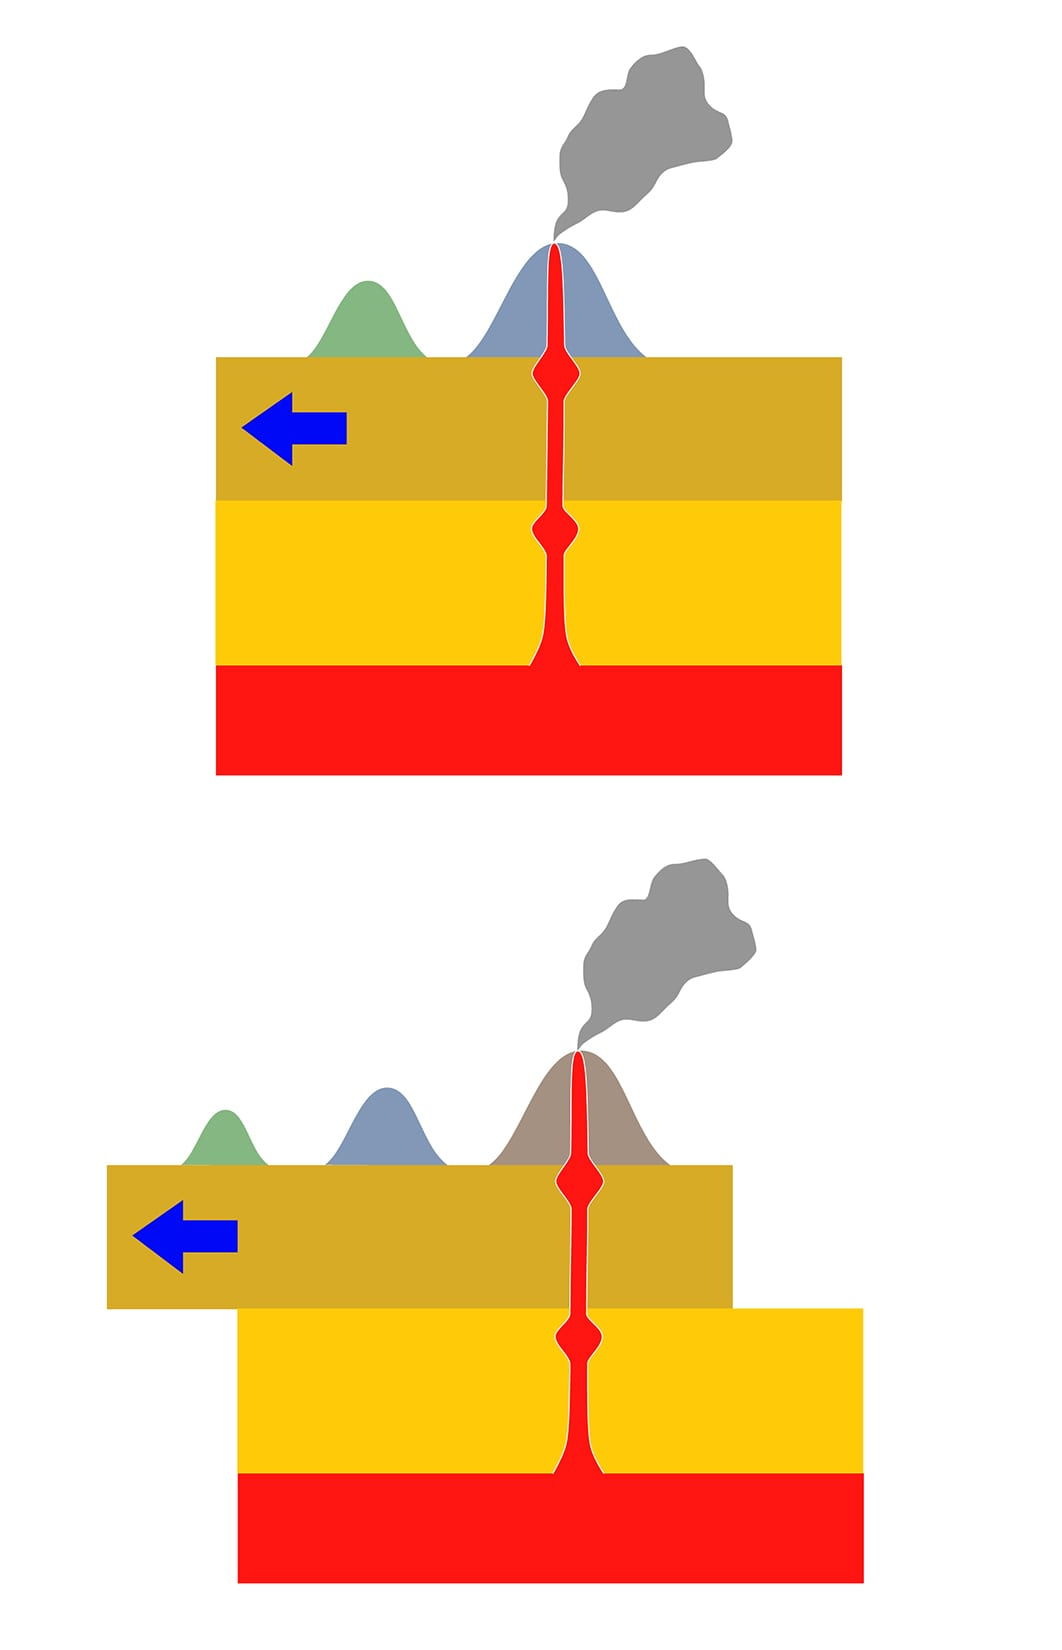 """Island chains like the Hawaiians are formed when tectonic plates move across a mantle plume """"hot spot."""" (Illustration courtesy of Los688/Wikimedia Commons)"""